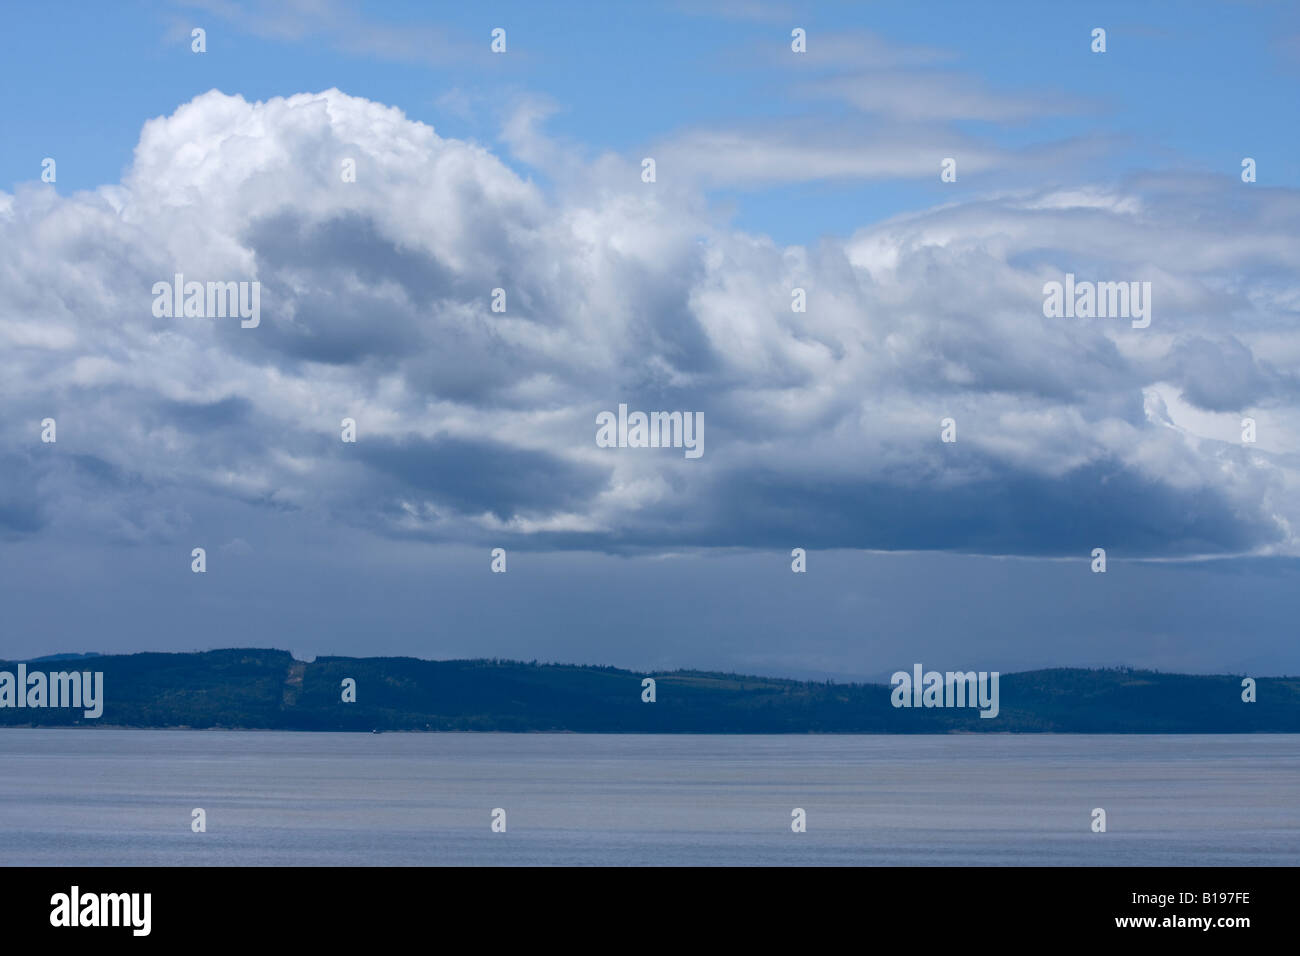 Rainstorm over Strait of Georgia near Vancouver Island - Stock Image